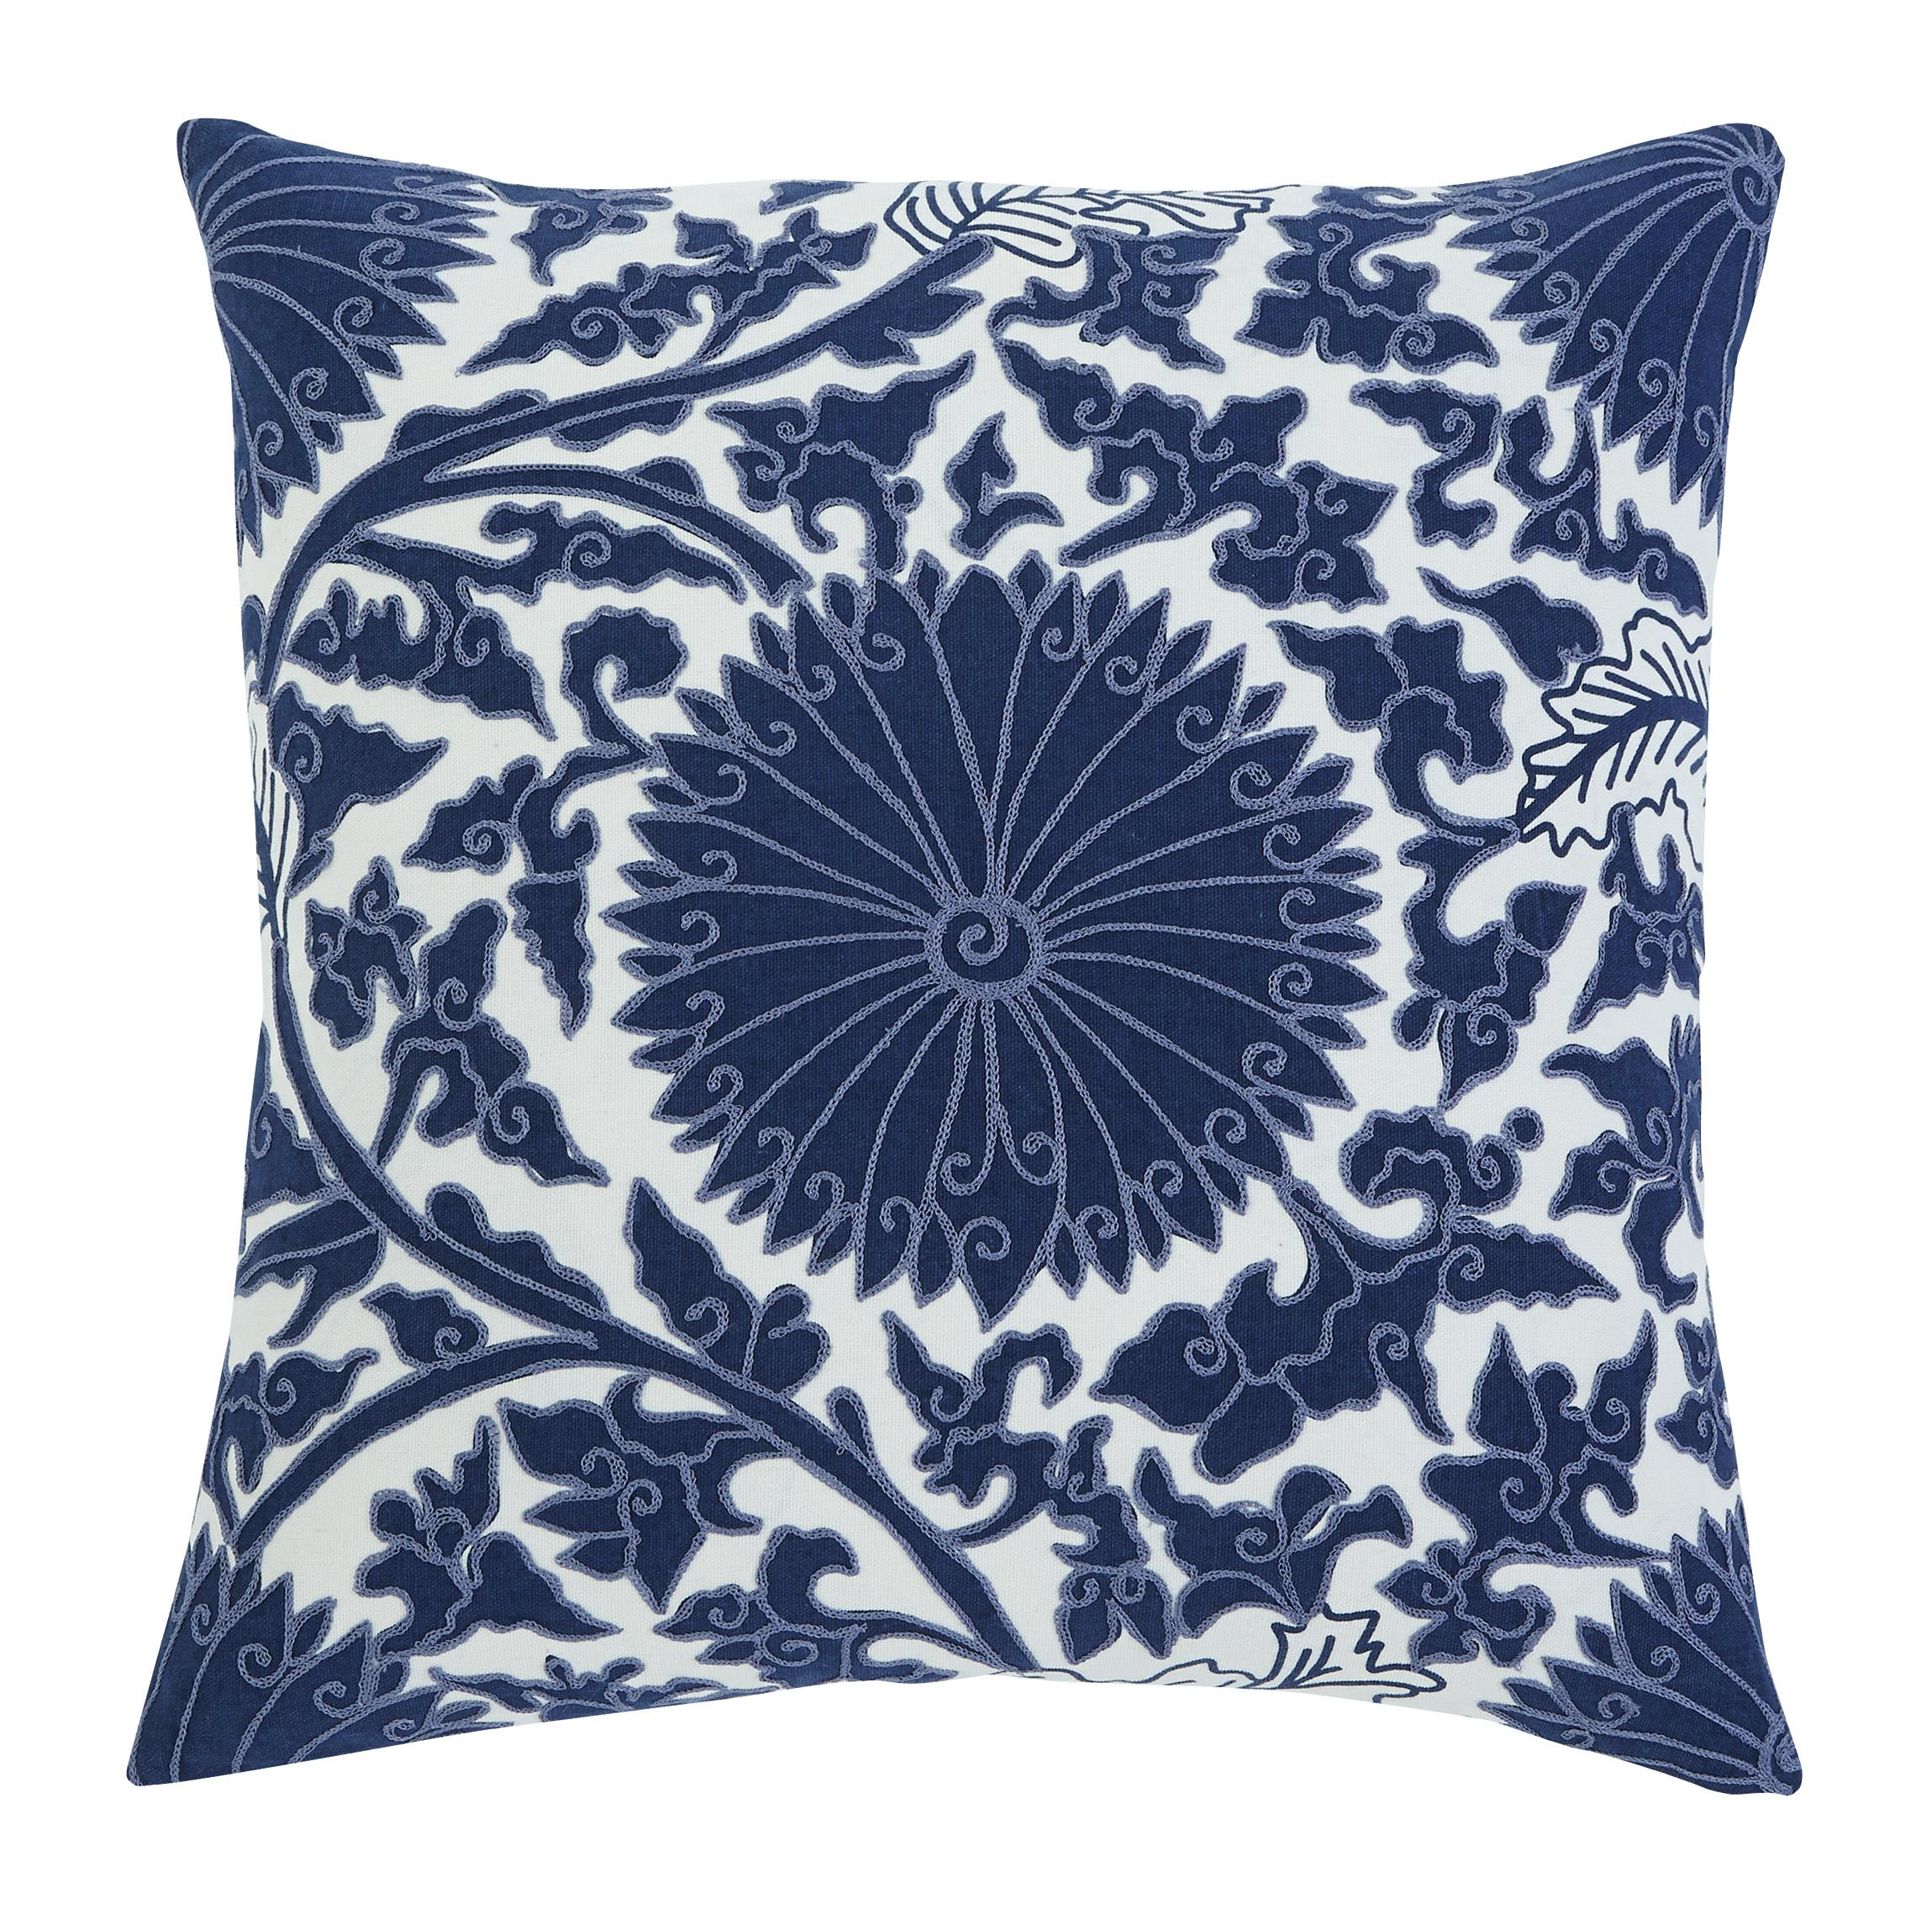 Signature Design by Ashley Pillows Medallion - Navy Pillow Cover - Item Number: A1000293P